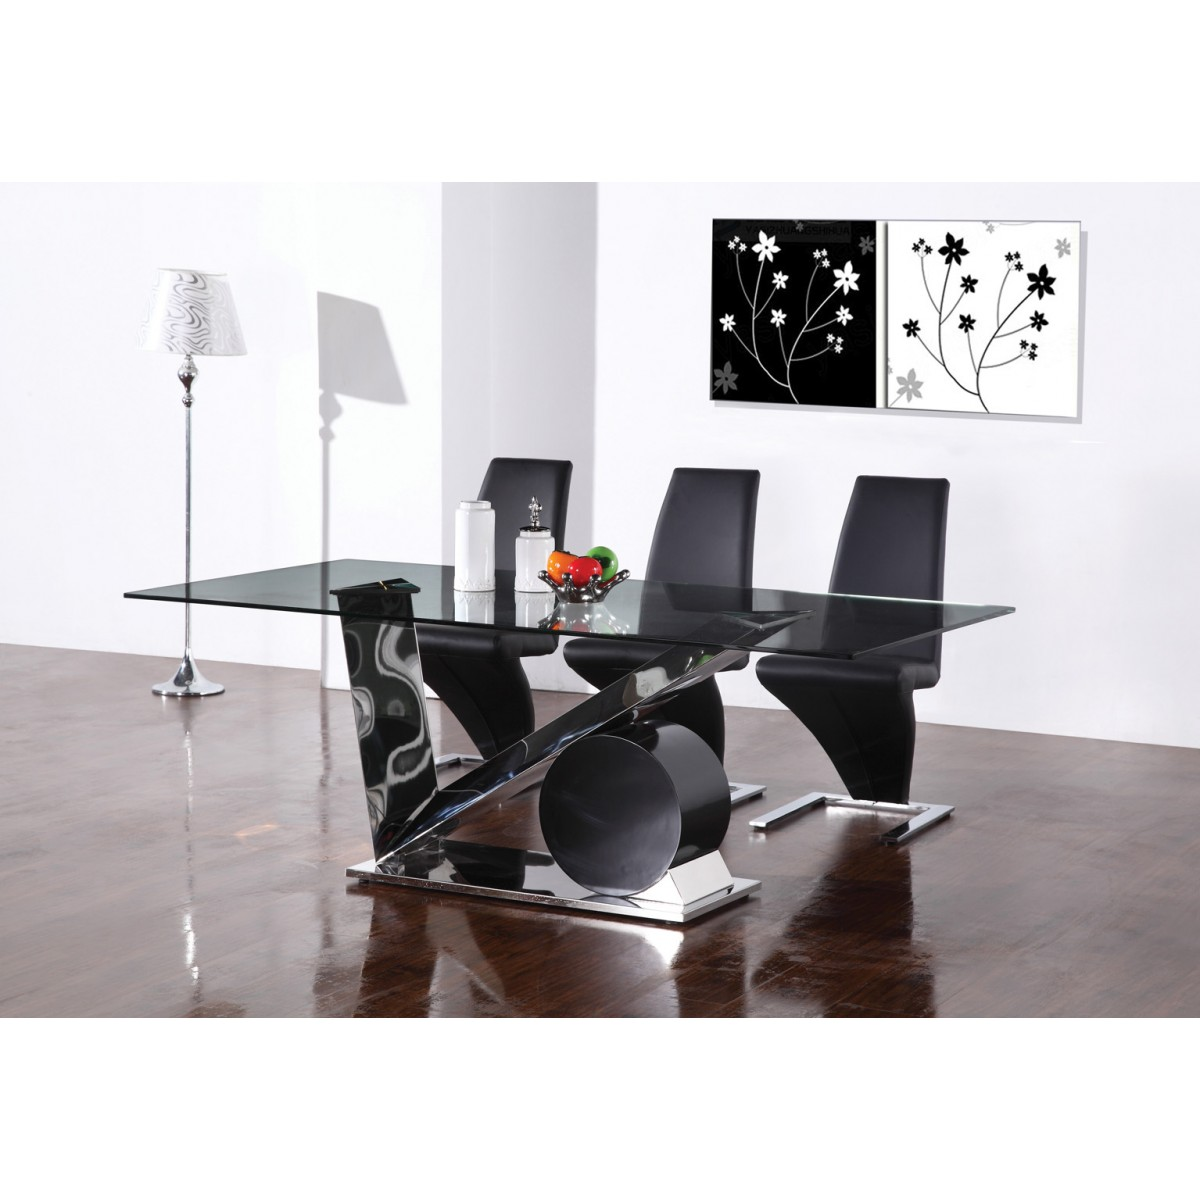 Formidable set de table pour table en verre 4 table for Salle a manger table verre